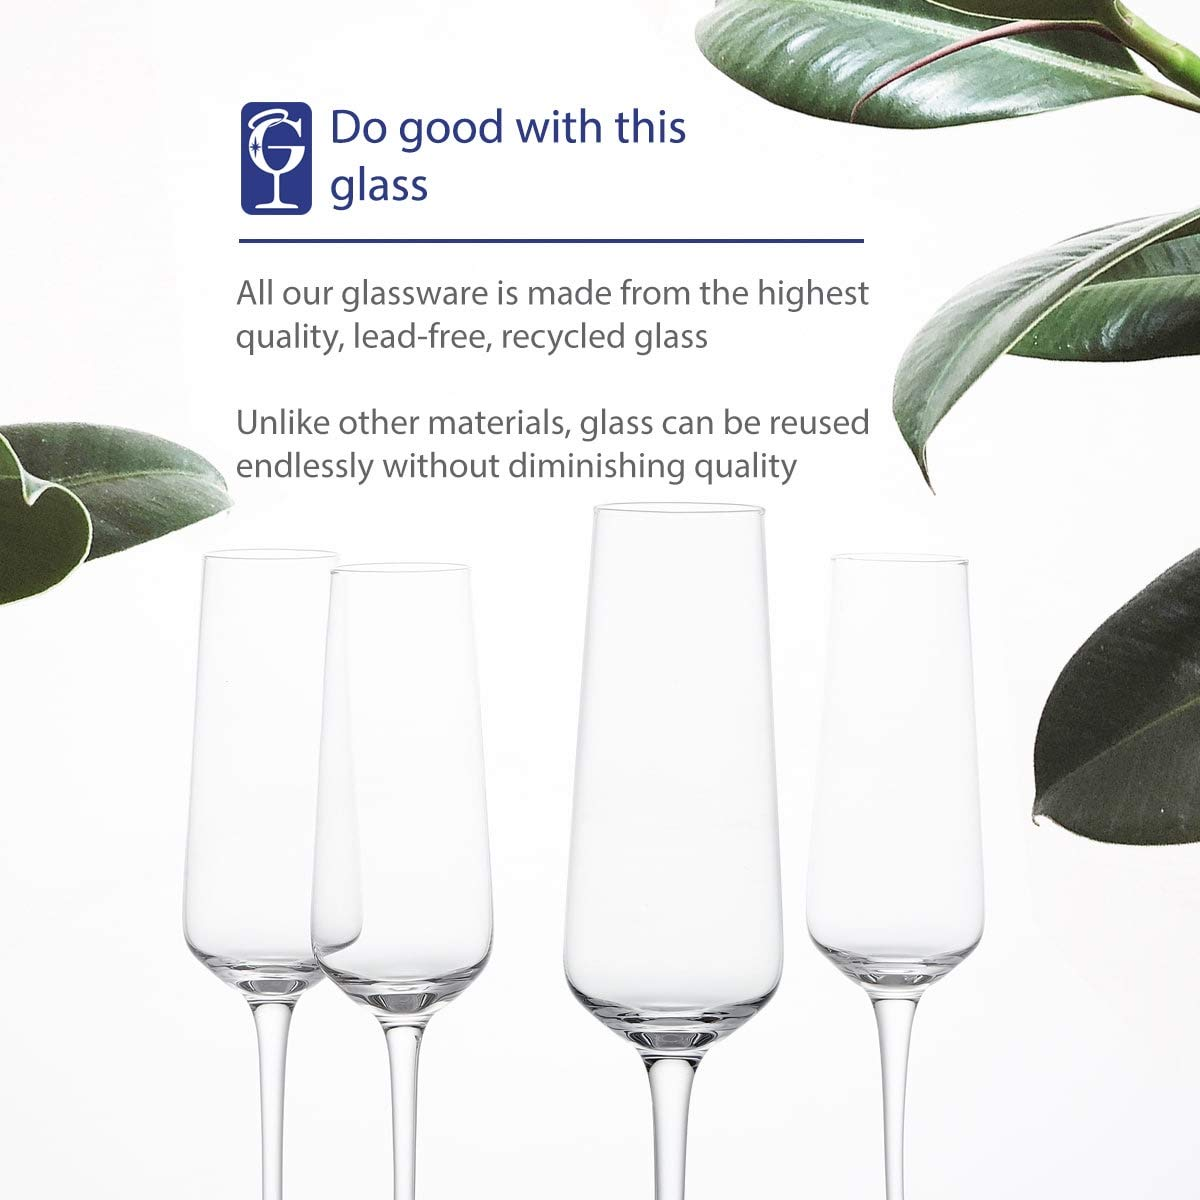 GoodGlassware Champagne Flutes (Set Of 4) 8.5 oz - Crystal Clear Clarity, Classic and Seamless Tower Design - Lead Free Glass, Dishwasher Safe, Quality Sparkling Wine Stemware Set by Vintorio (Image #5)